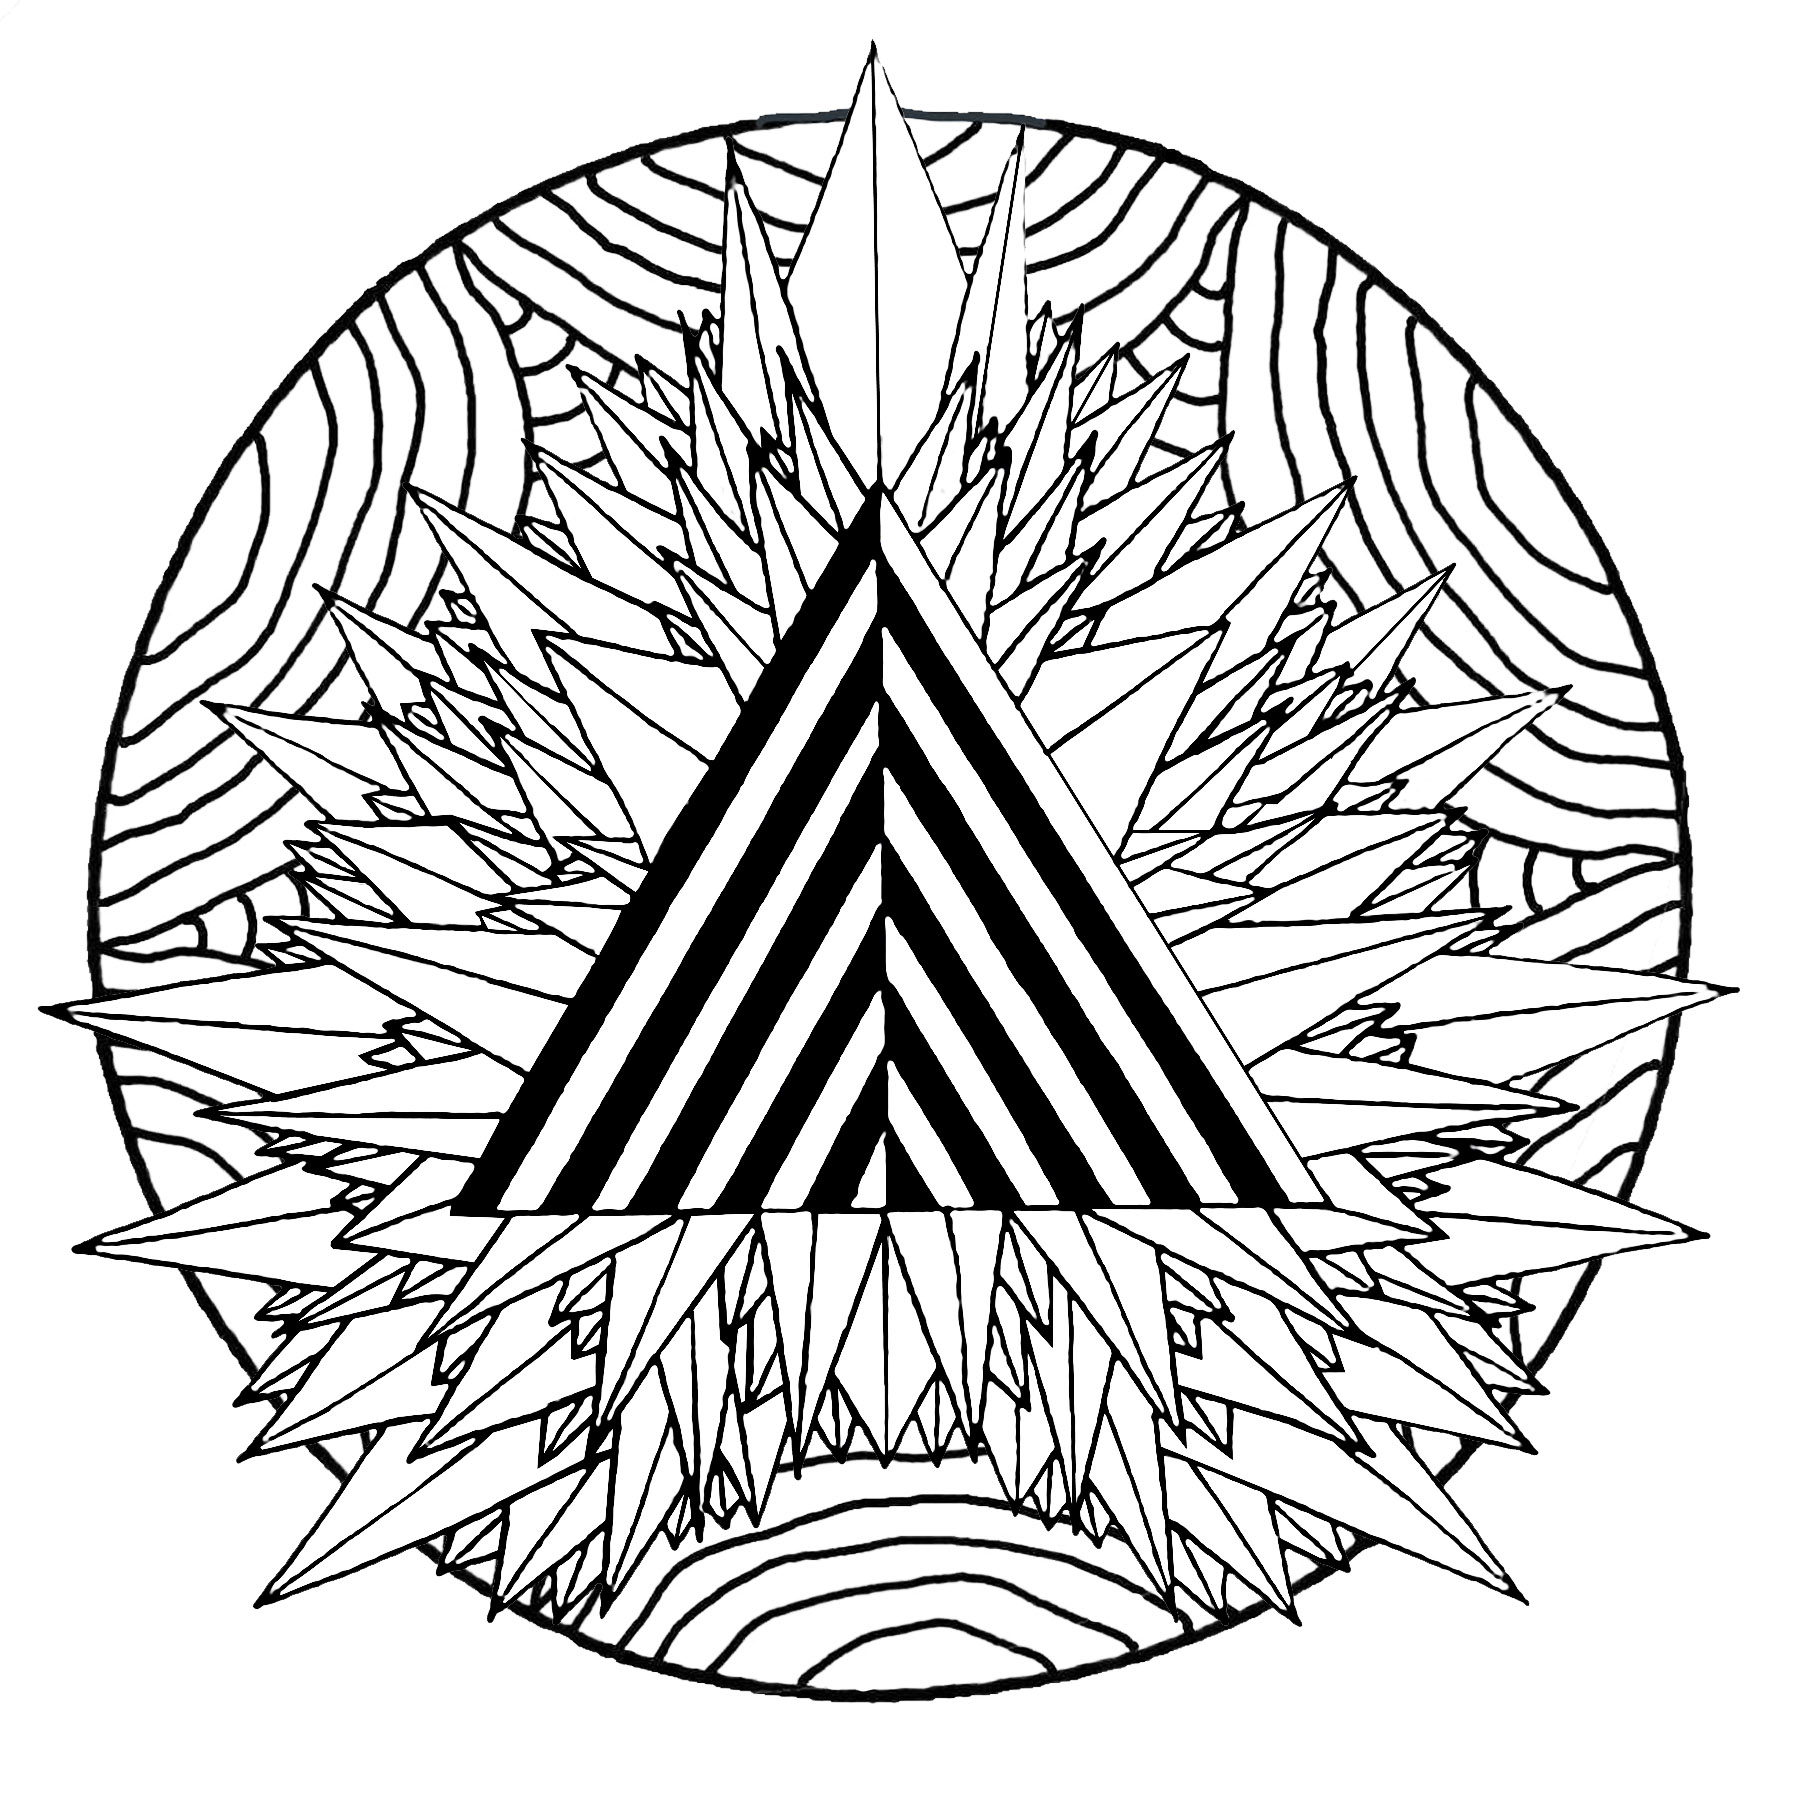 Mandala mystical triangle - M&alas Adult Coloring Pages